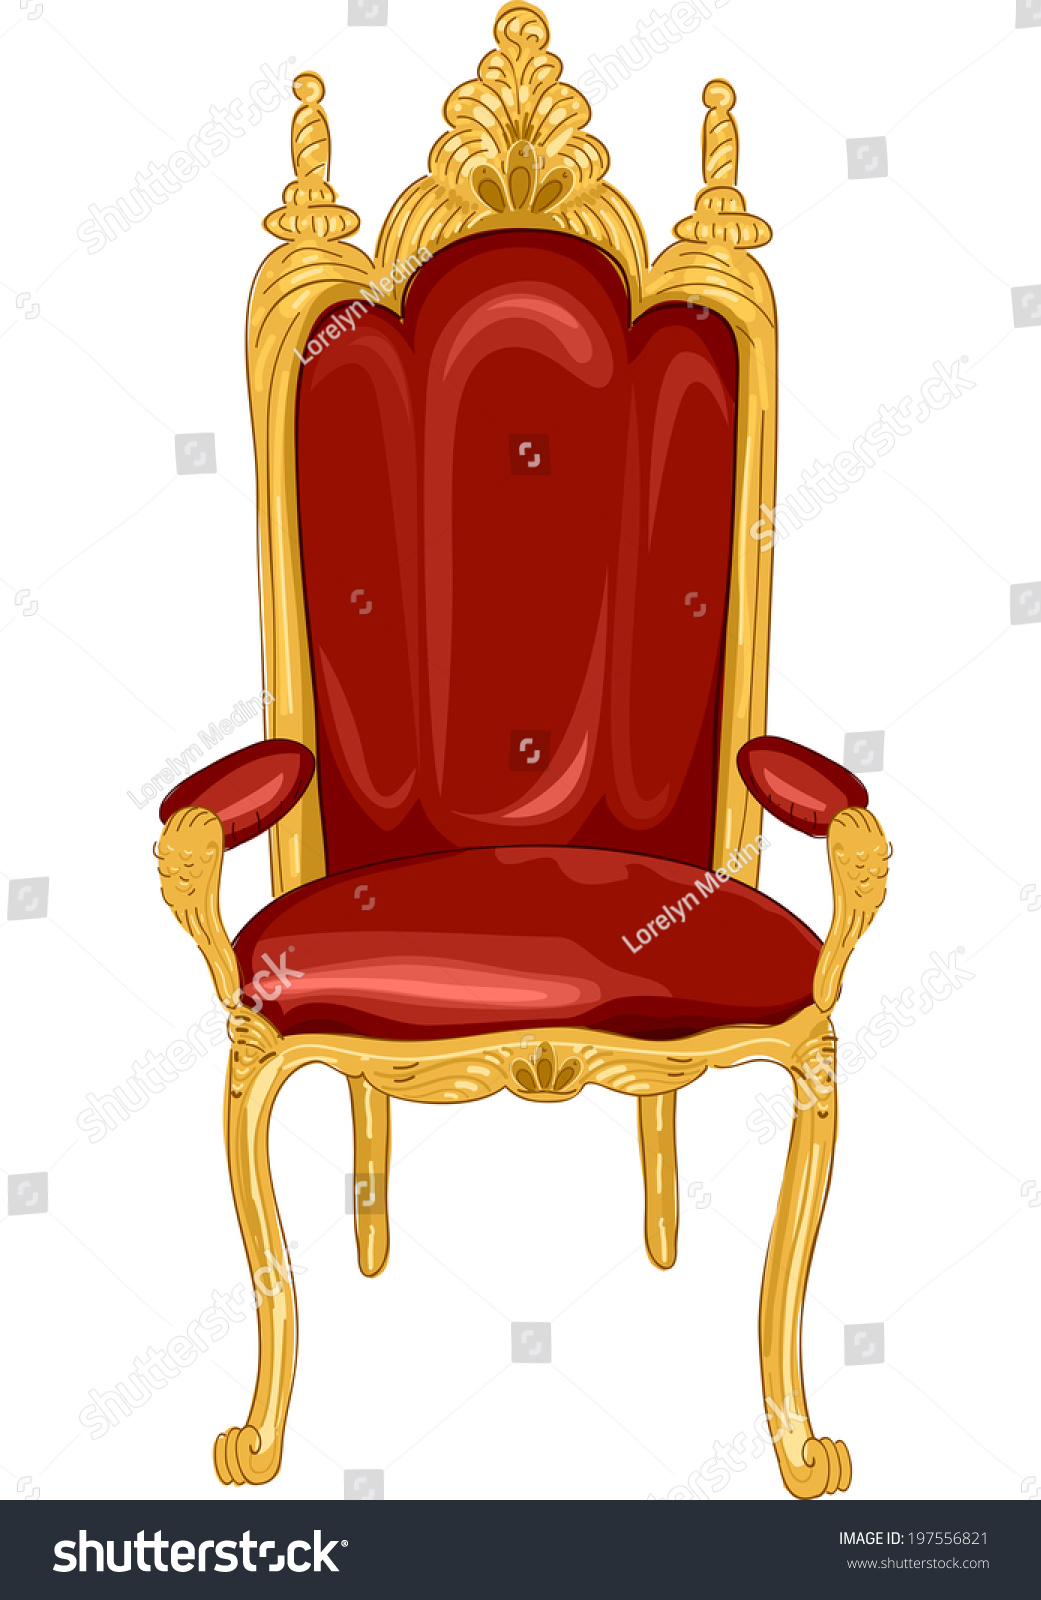 Illustration featuring royal chair red gold stock vector for Throne chair plans